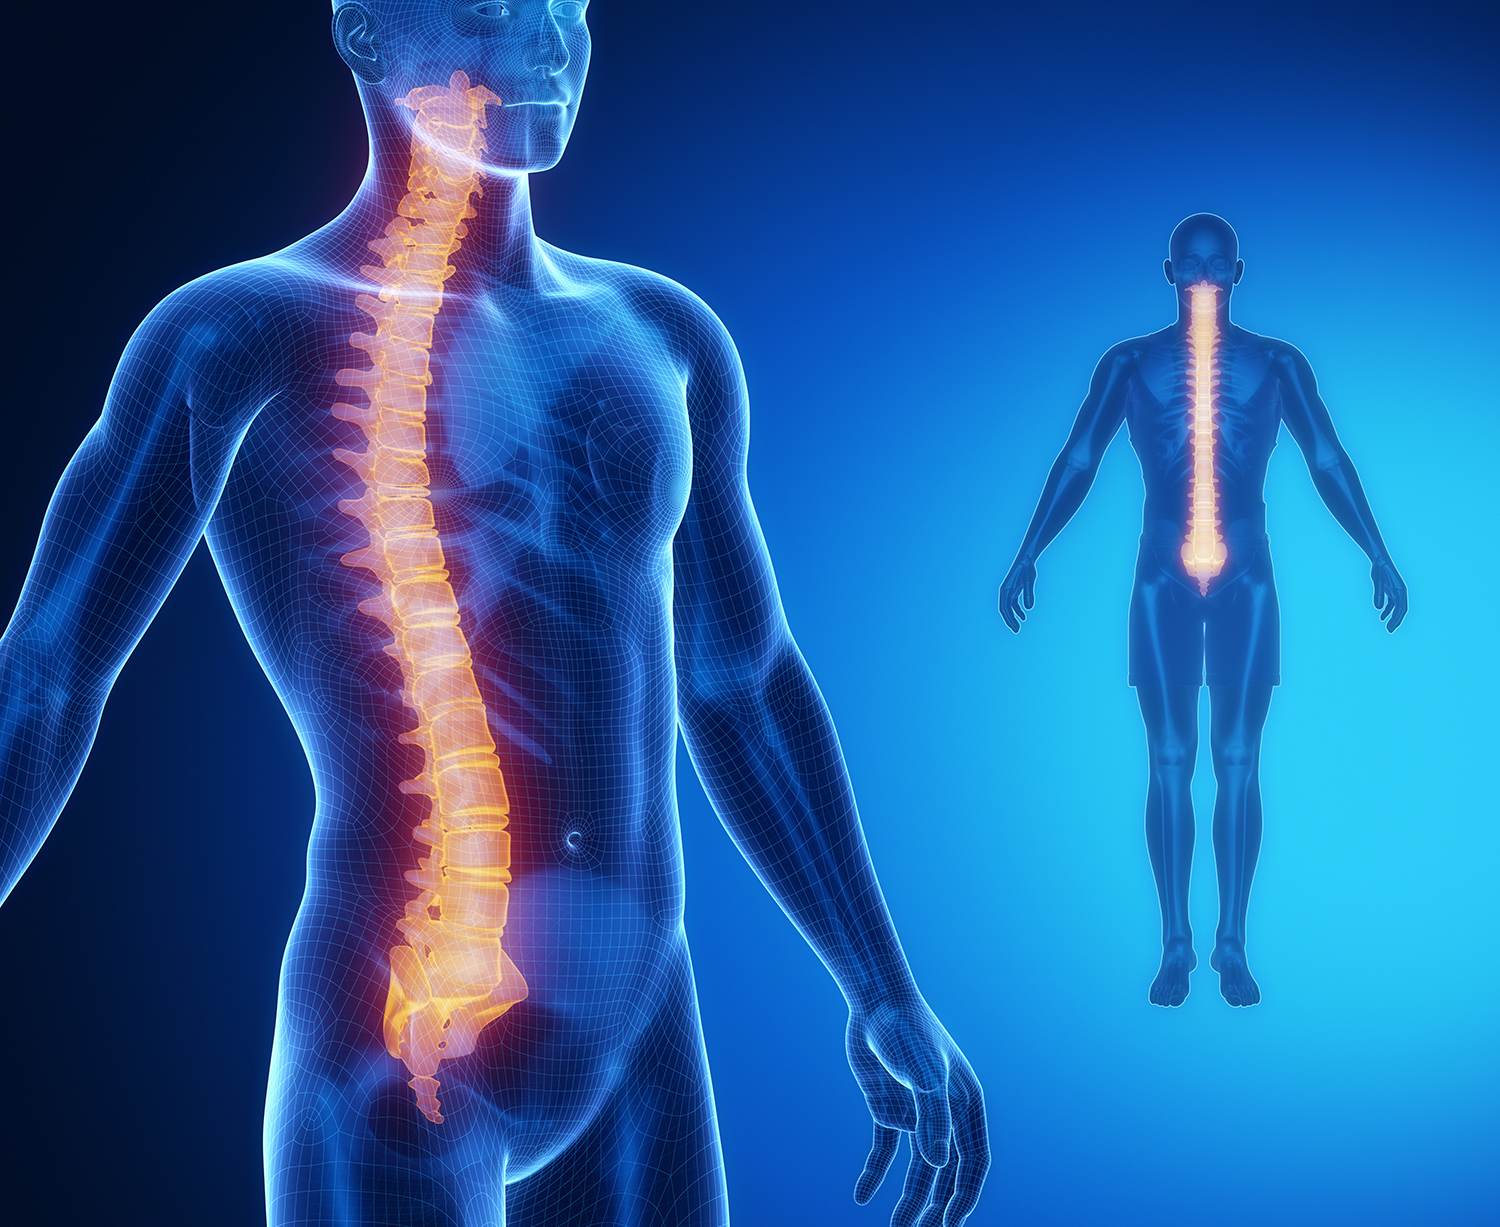 Spinal Cord Regeneration Depends on Activation of Specific